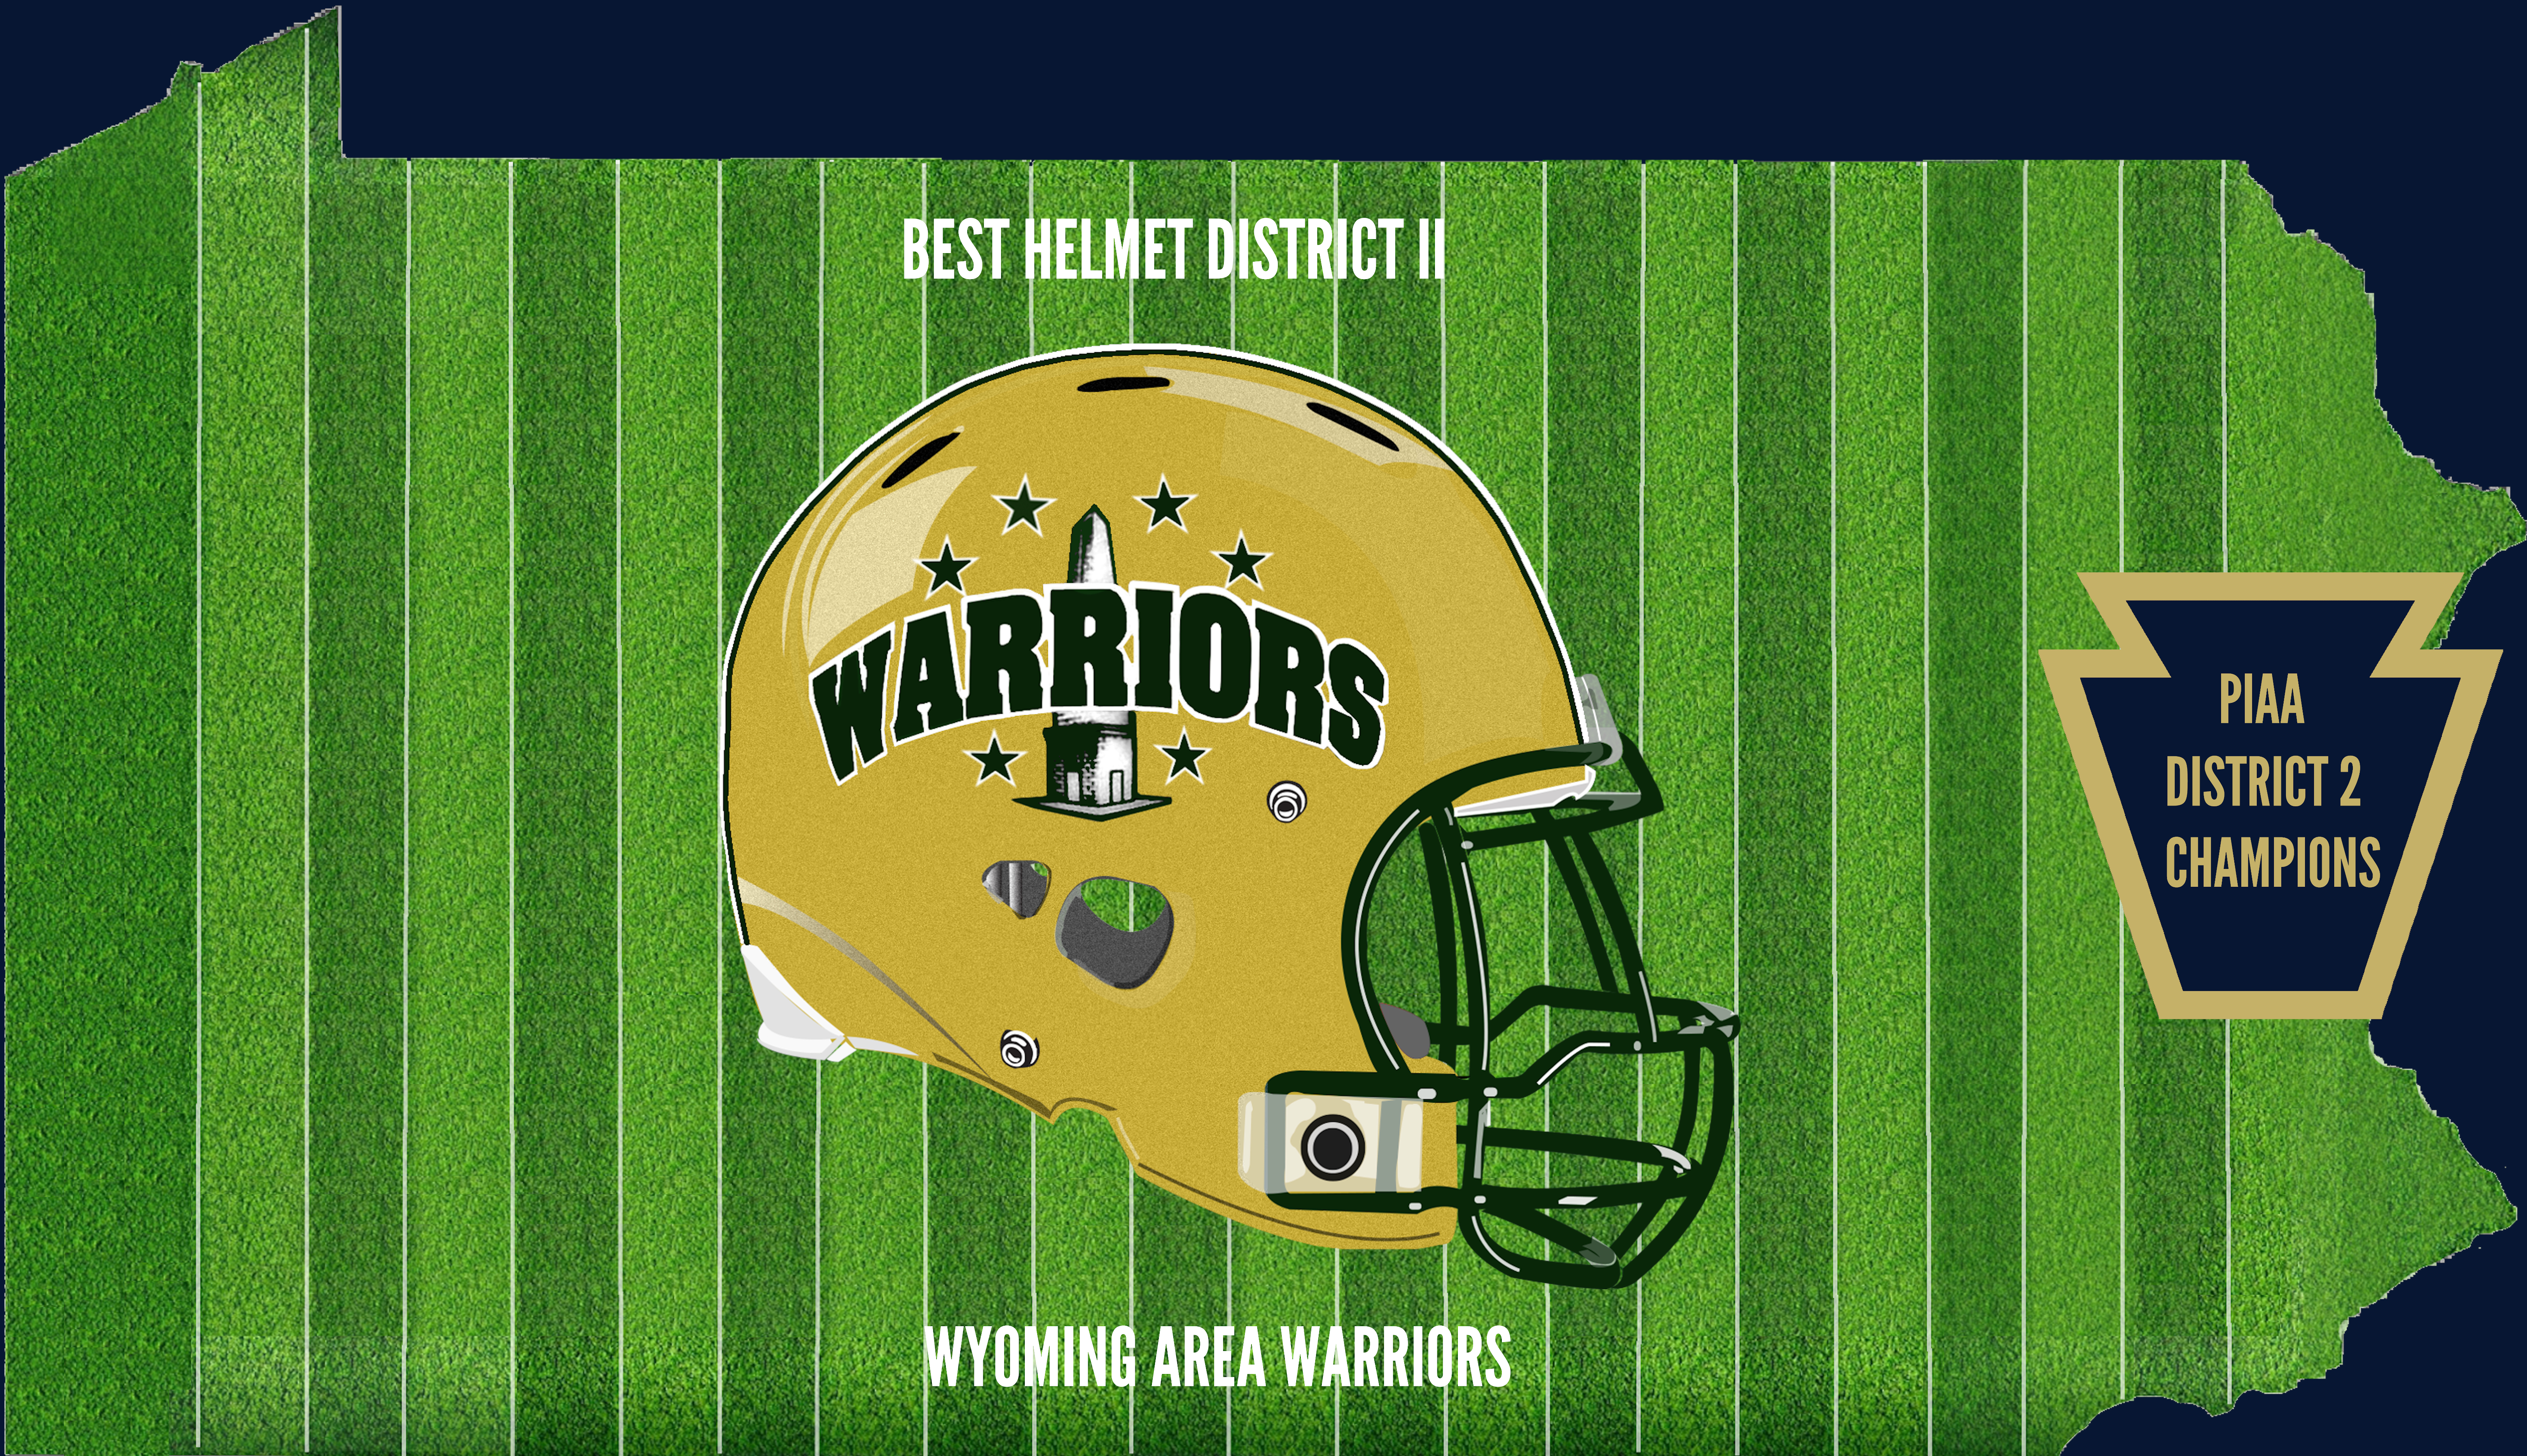 District 2 Champion Helmet (1)